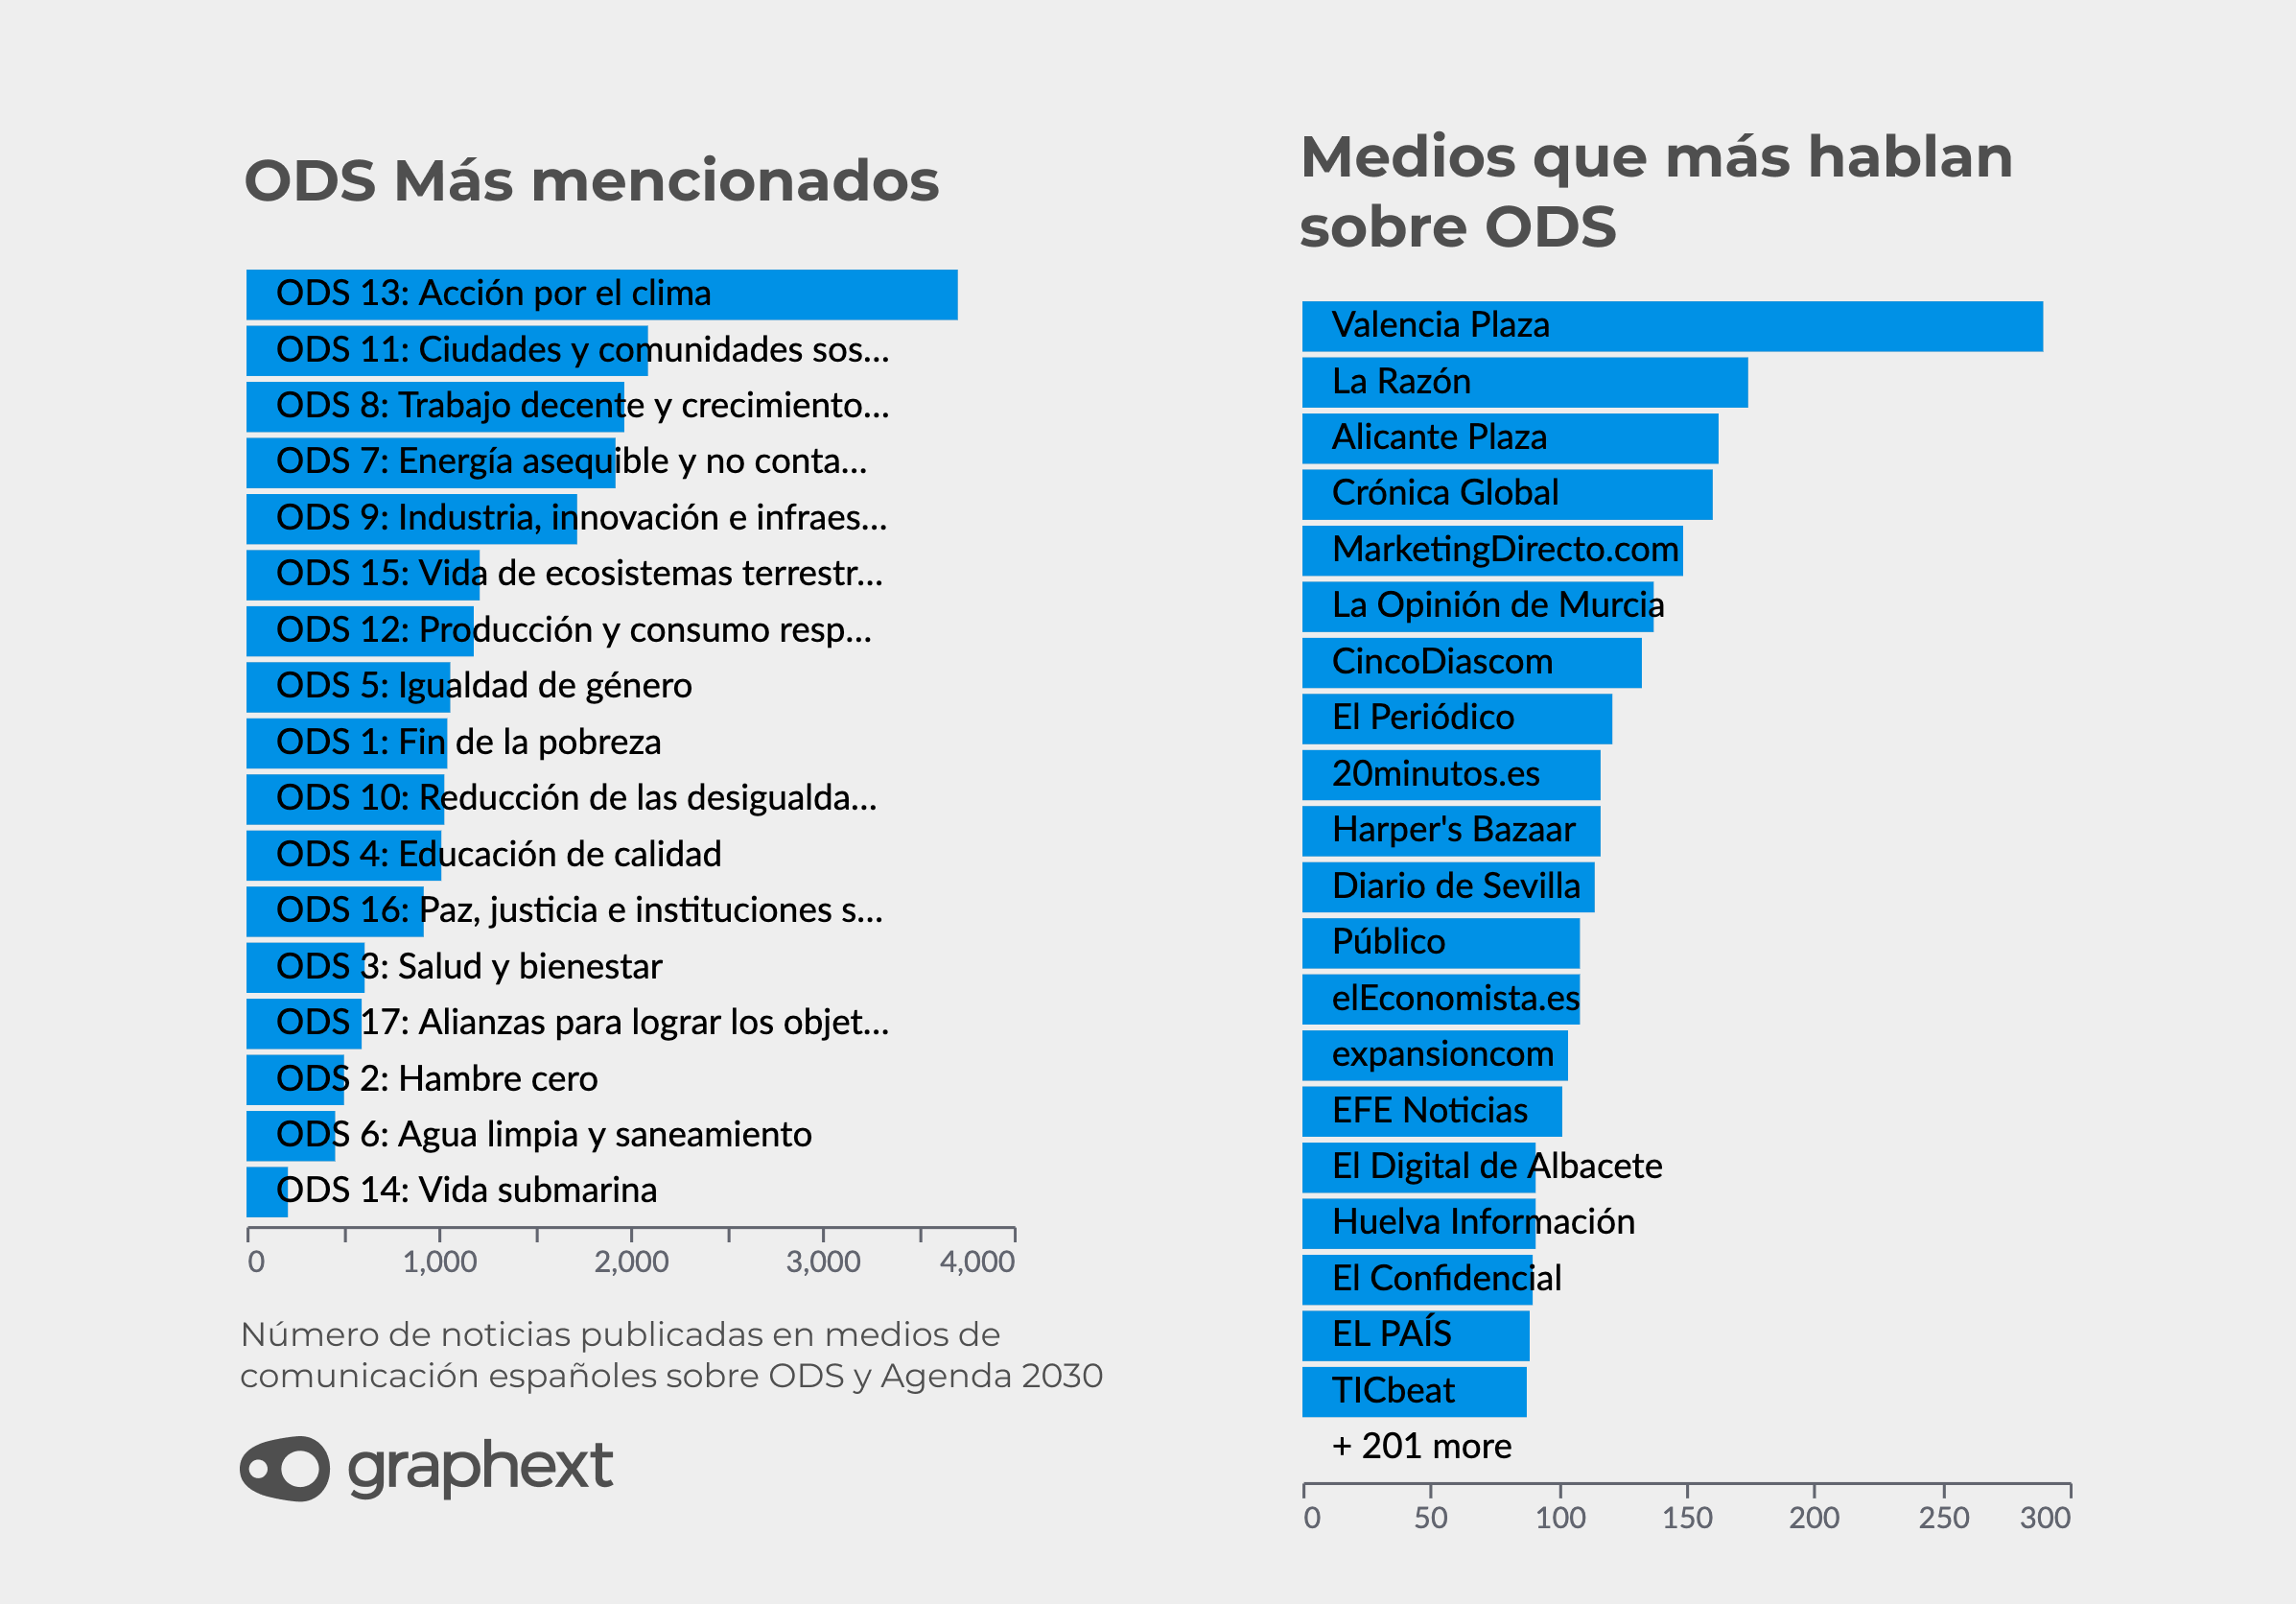 A list with the most mentioned ODS and 2030 on Spanish Media. Also, a list in order of the most relevant Media that mentioned 2030 Agenda and ODS.